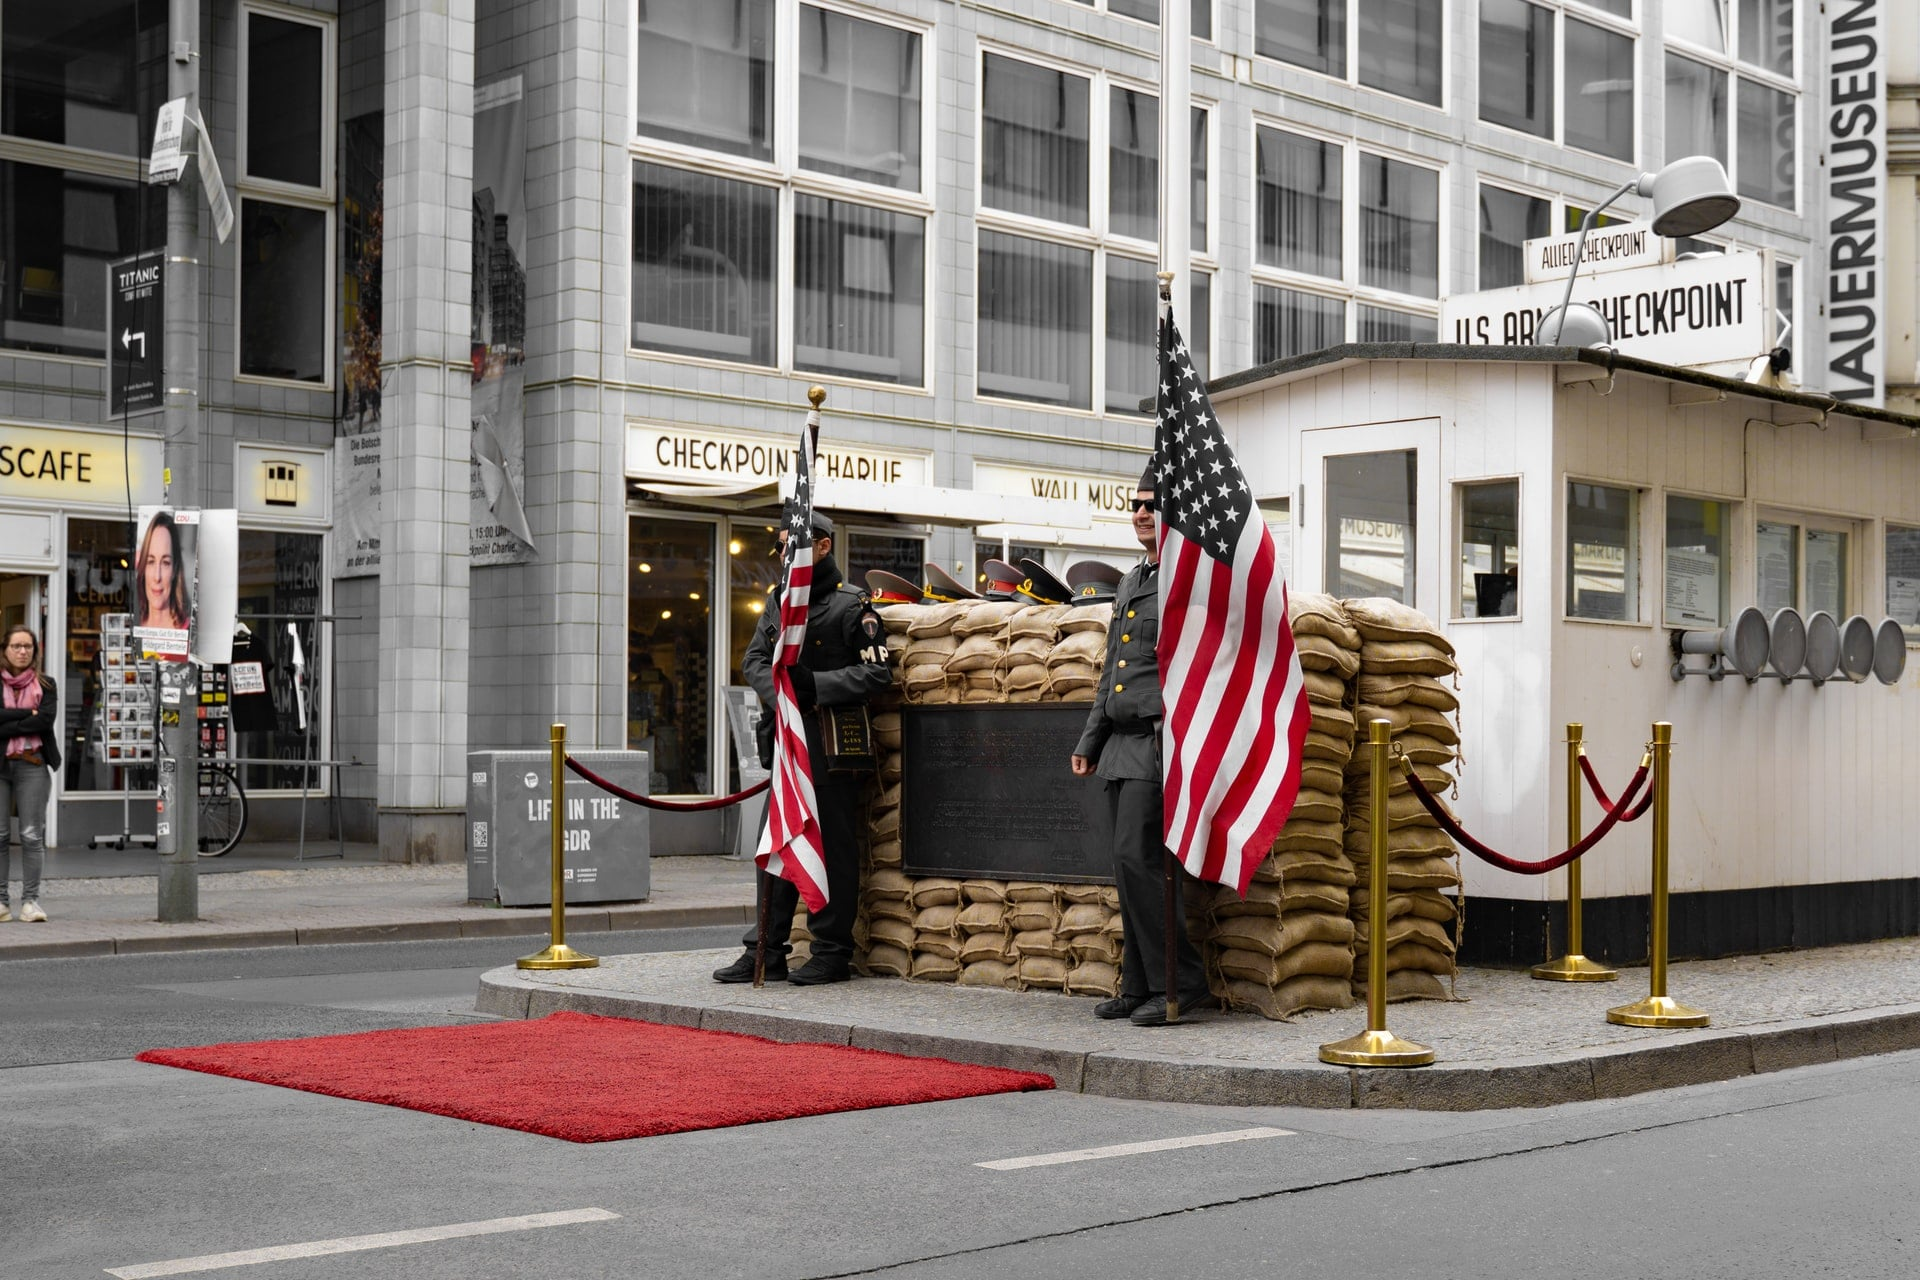 two-army-officers-standing-with-us-flags-in-the-middle-of-a-city-road-checkpoint-charlie